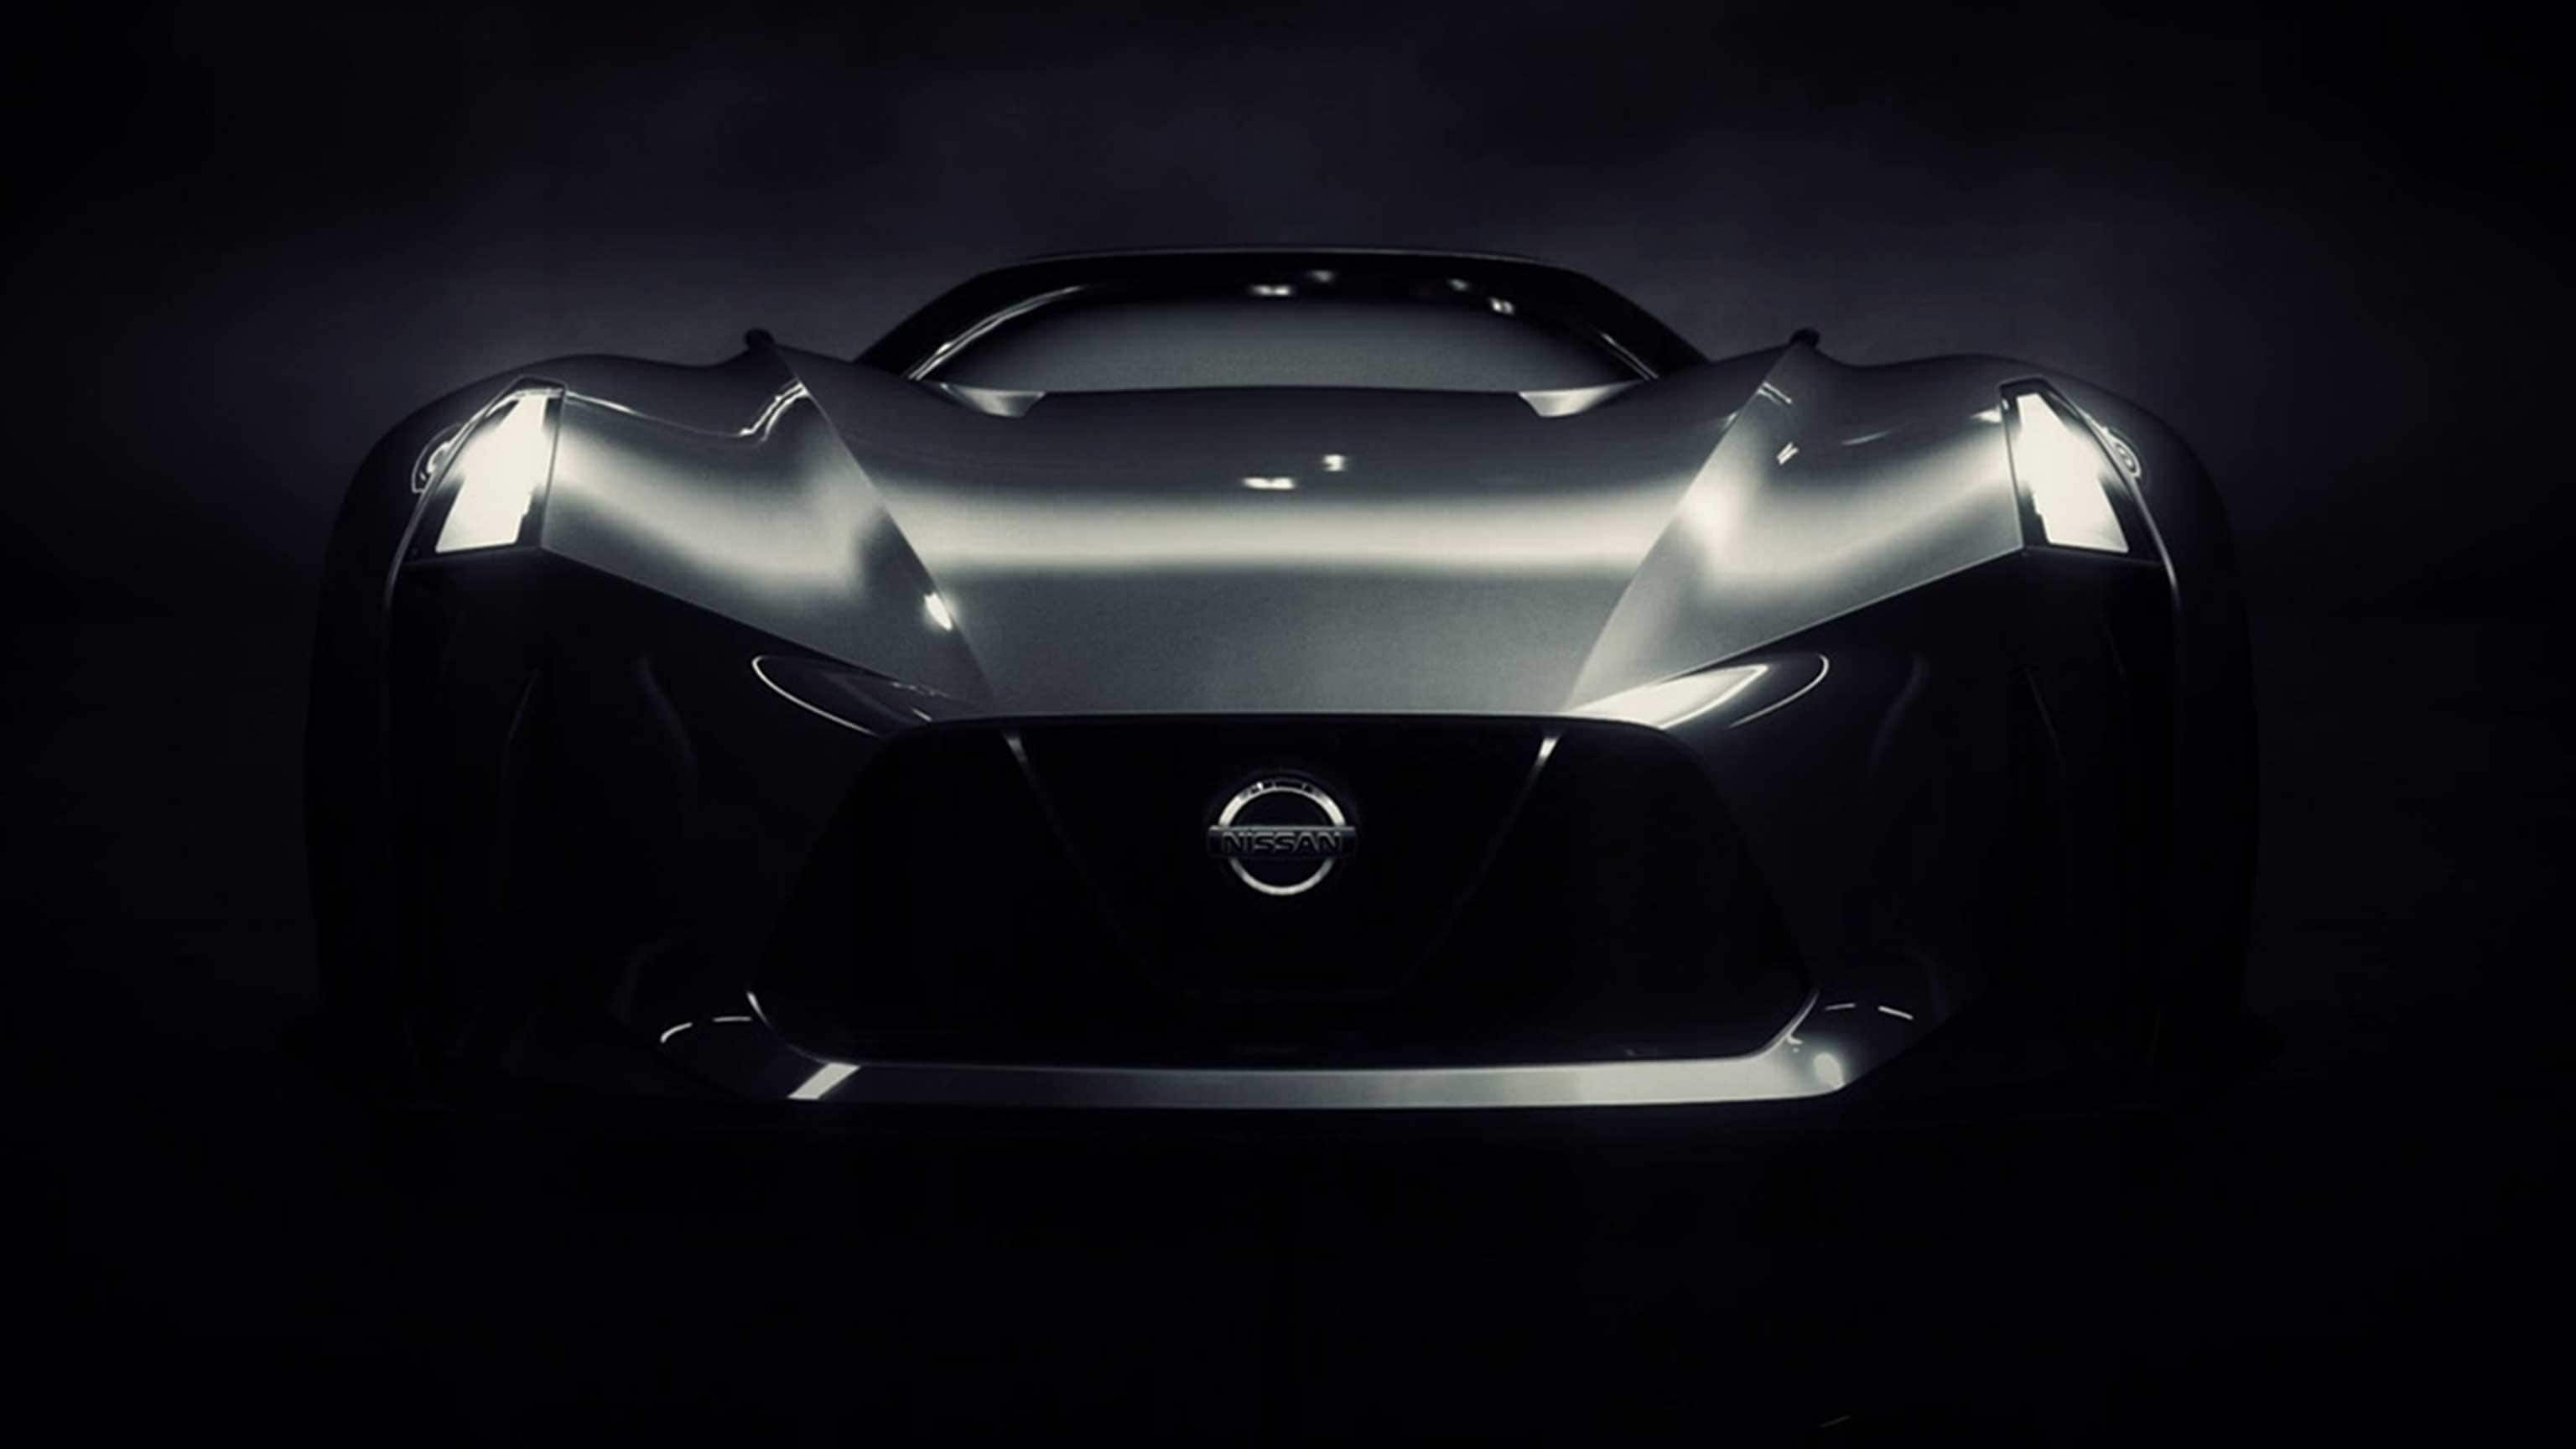 38 All New Nissan Concept 2020 Top Speed Redesign